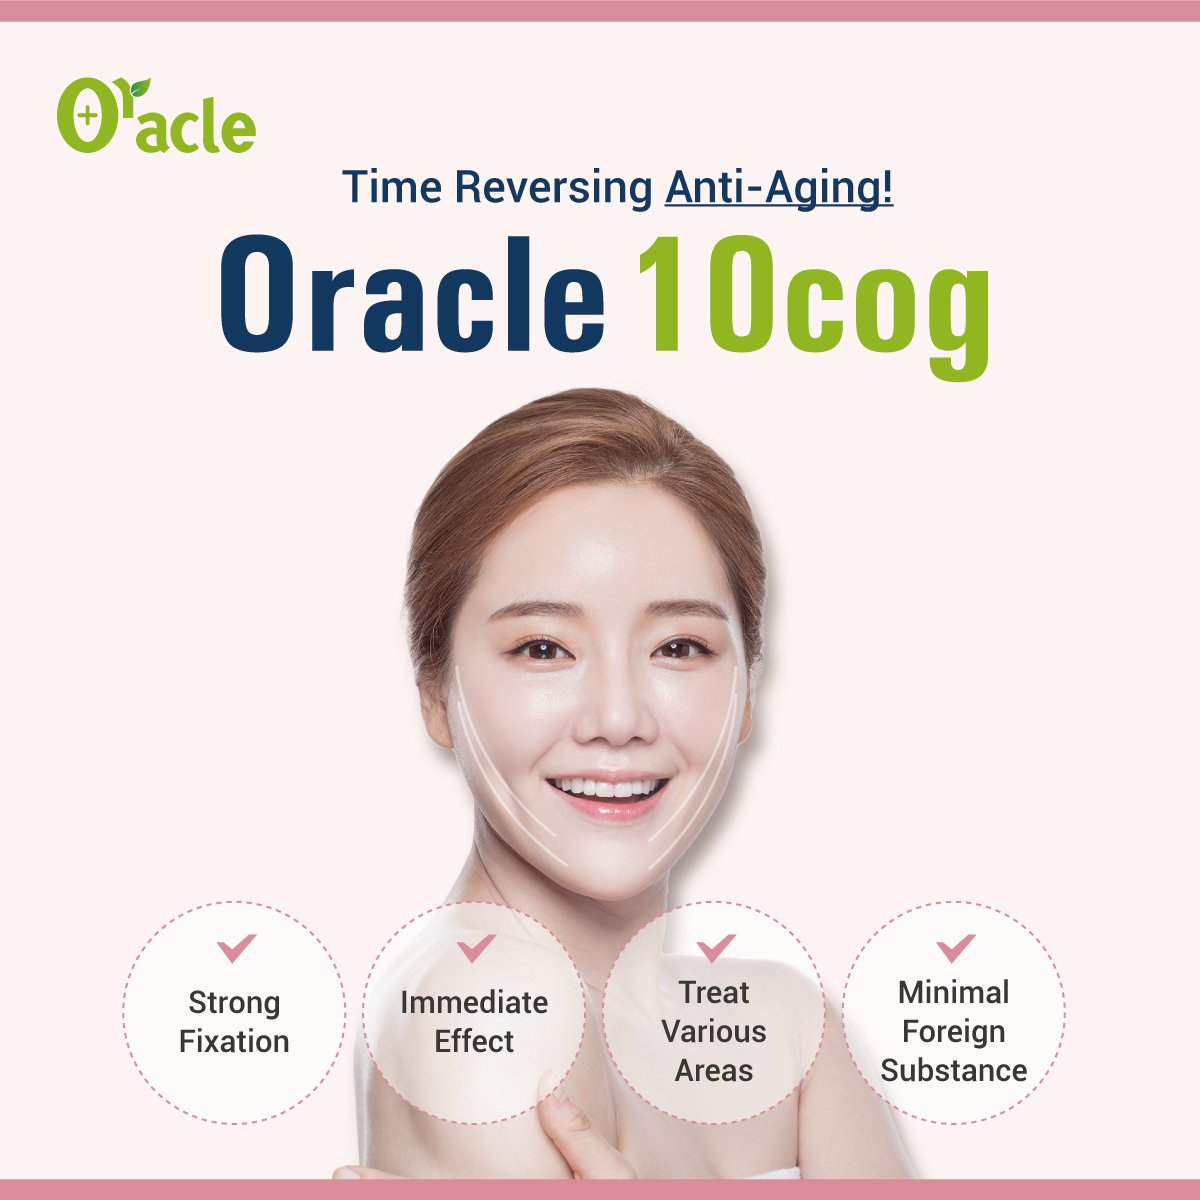 Oracle Clinic on Twitter: